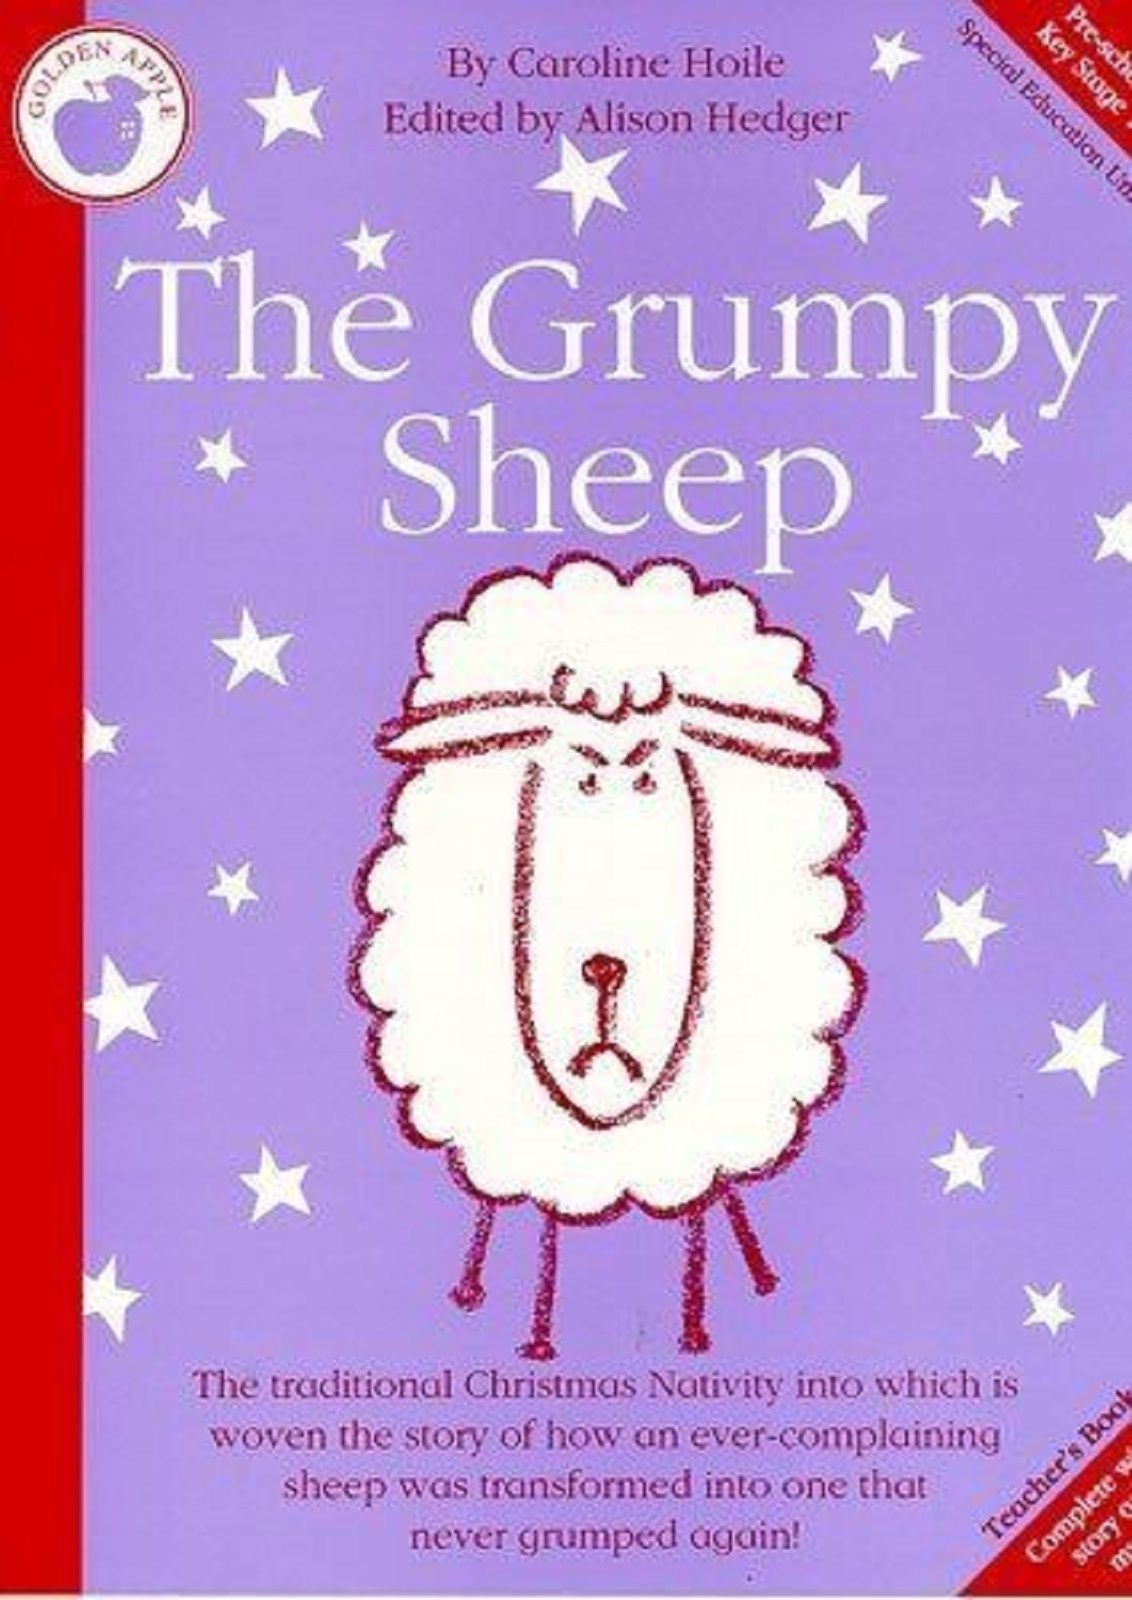 Caroline Hoile Pre & KS1 The Grumpy Sheep Christmas Nativity Teachers Book S131